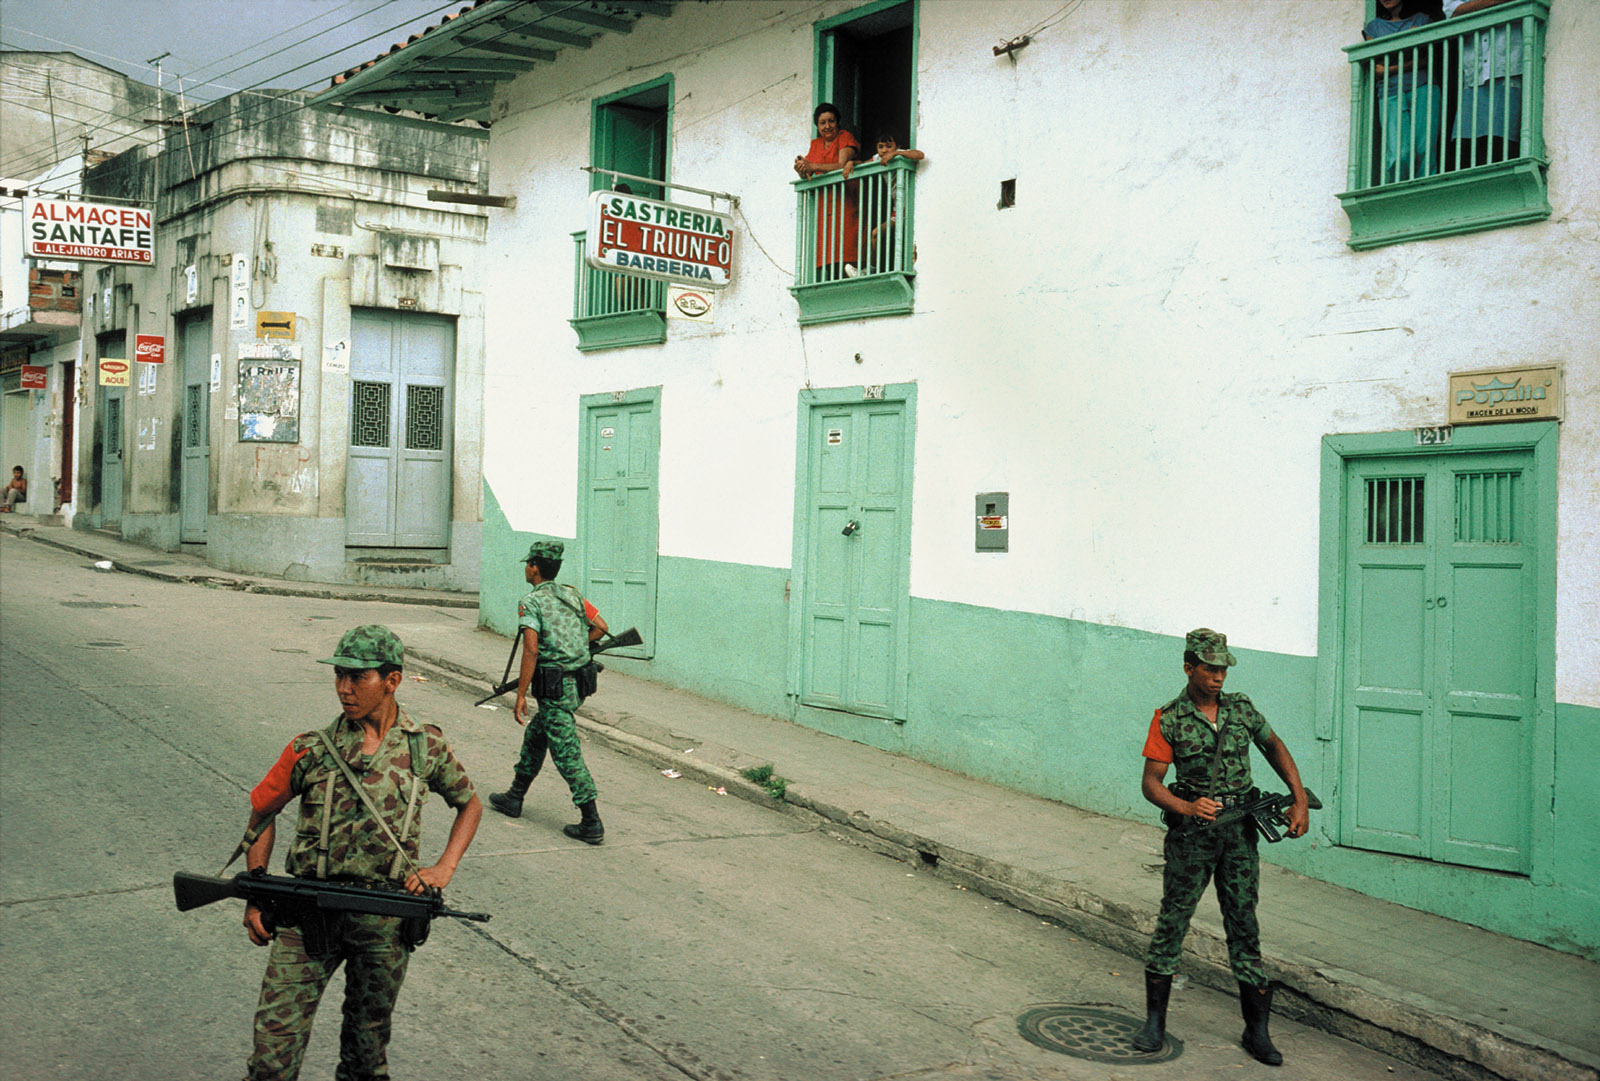 Government troops enforcing a daytime curfew, San Vicente de Chucurí, Colombia, 1988